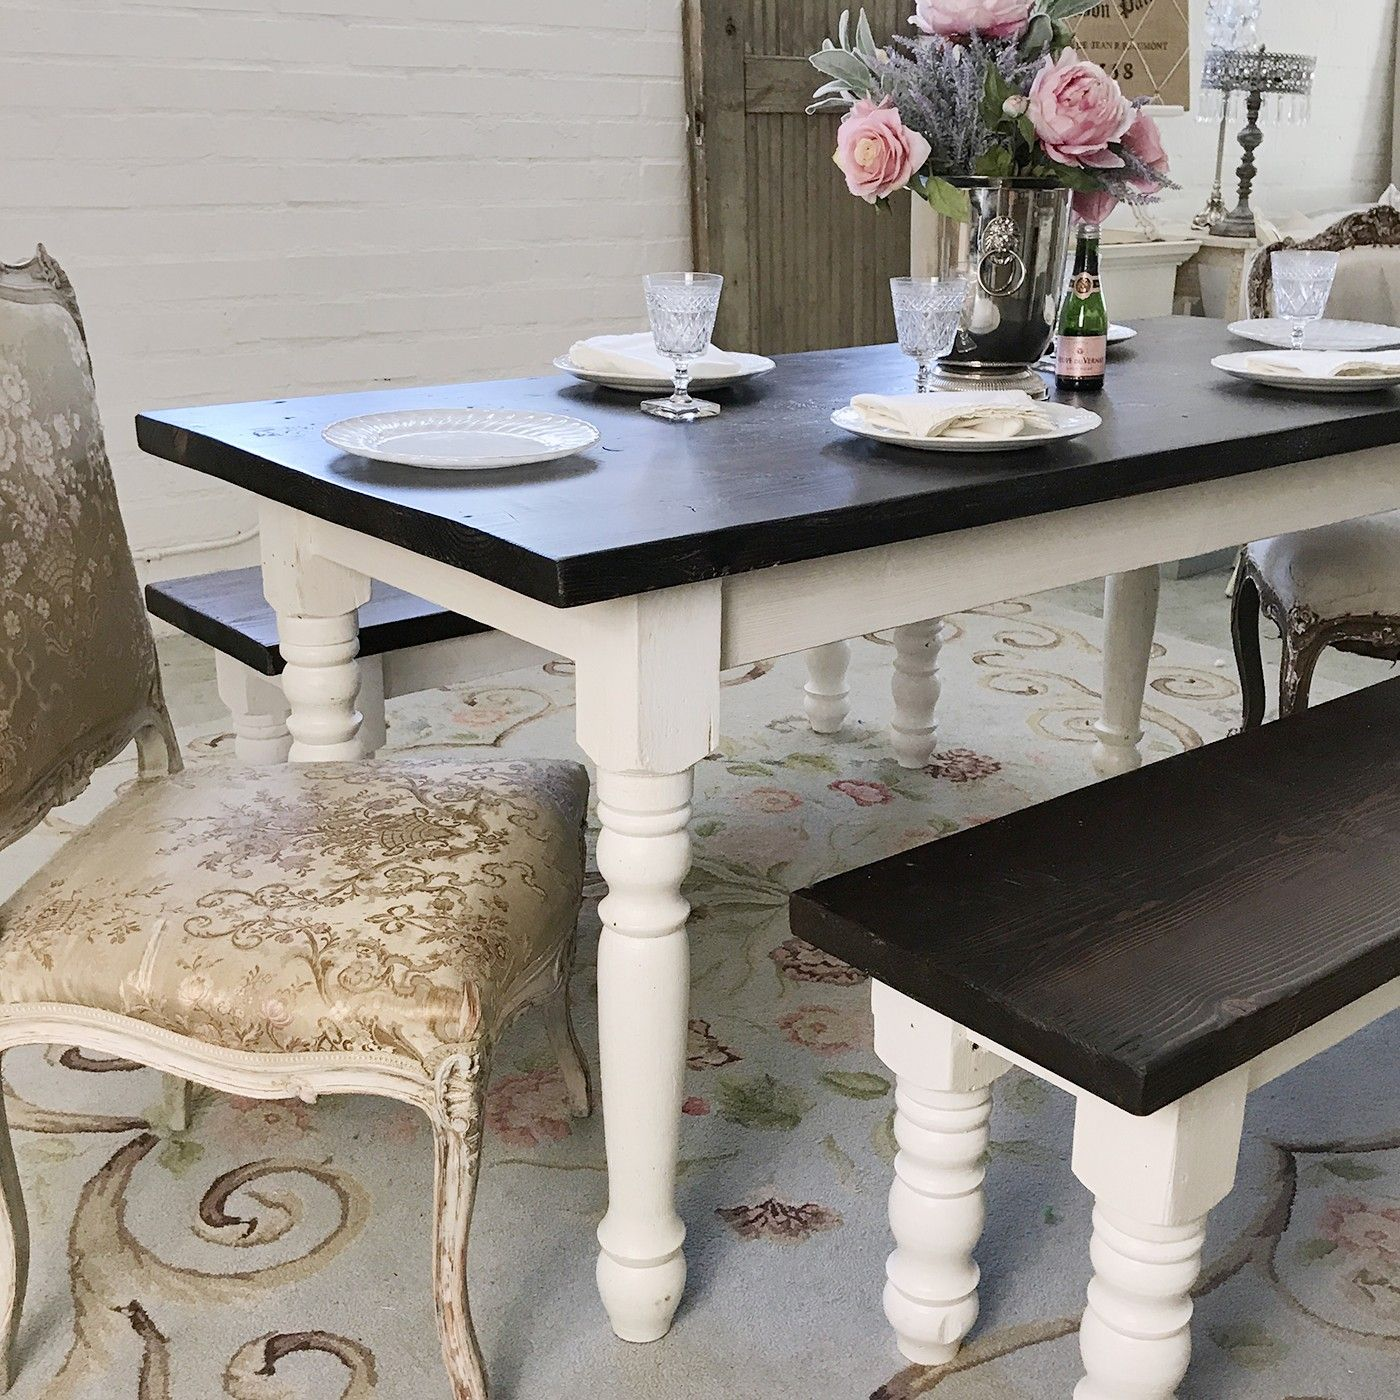 Bella french farmhouse dining table with dark top in 2020